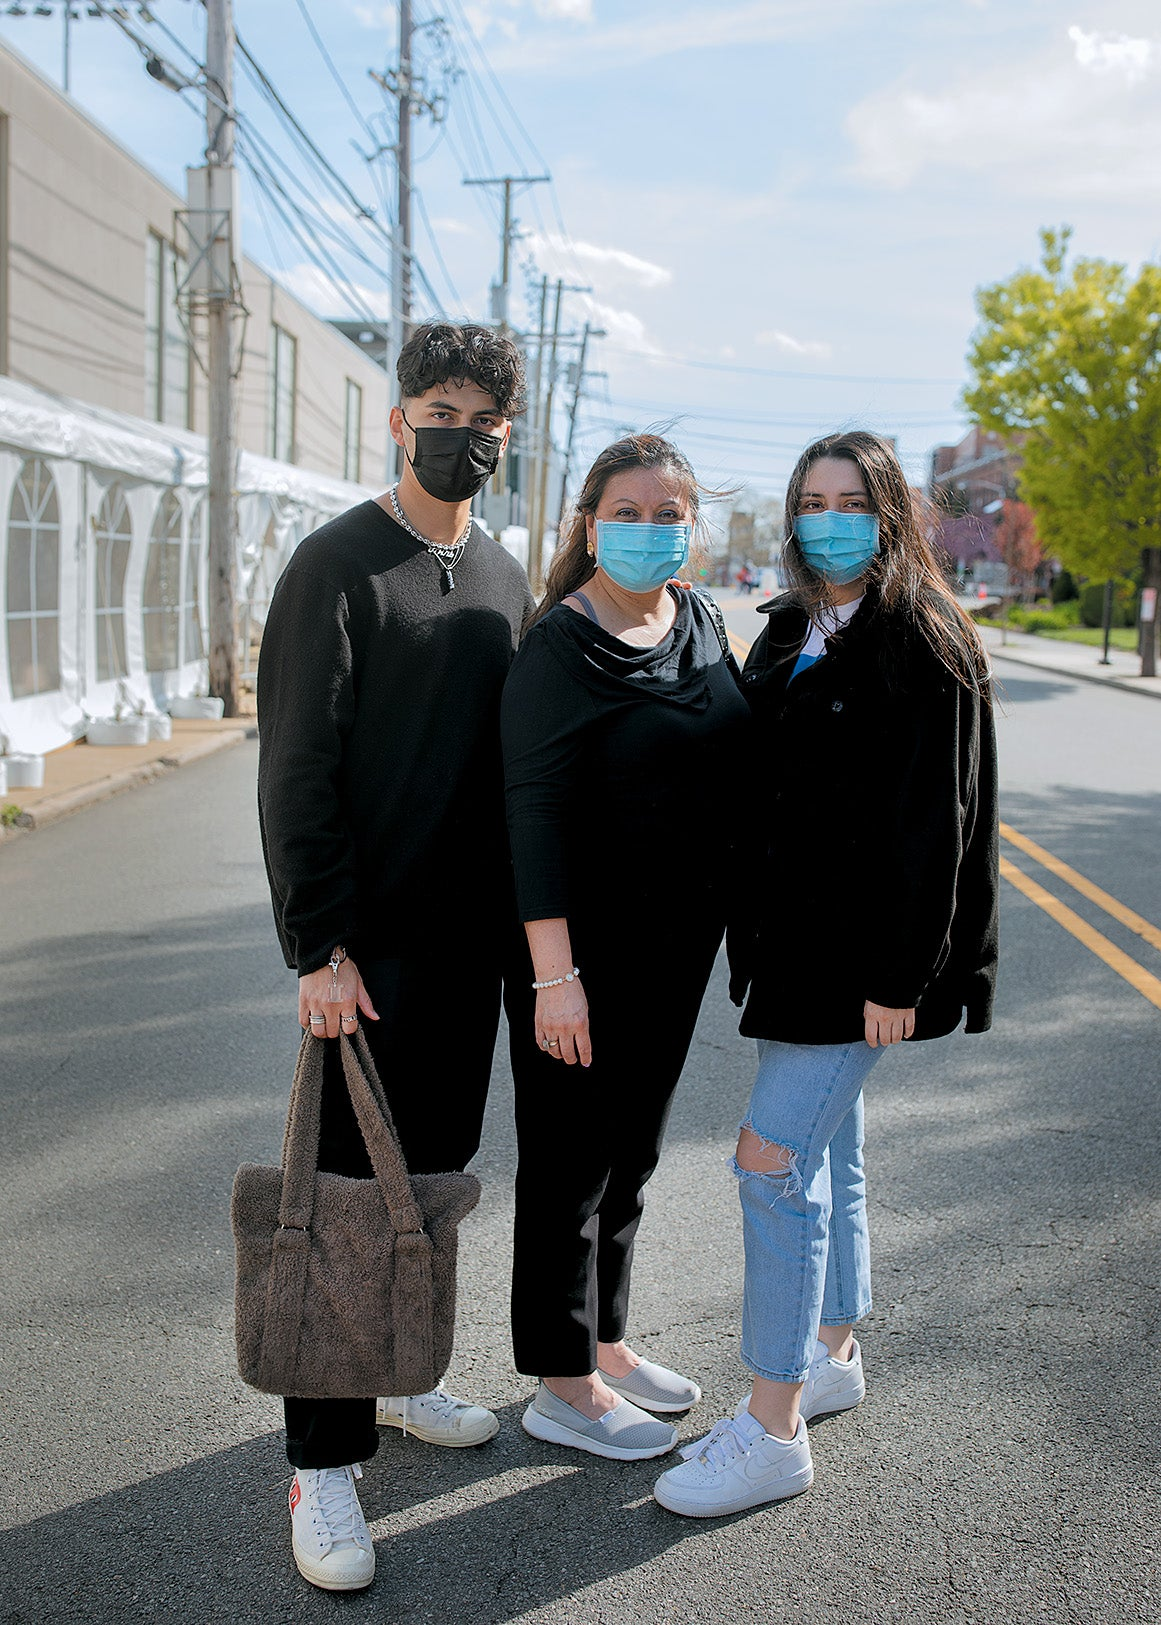 Three people wearing face masks and black clothing posing together on the street.